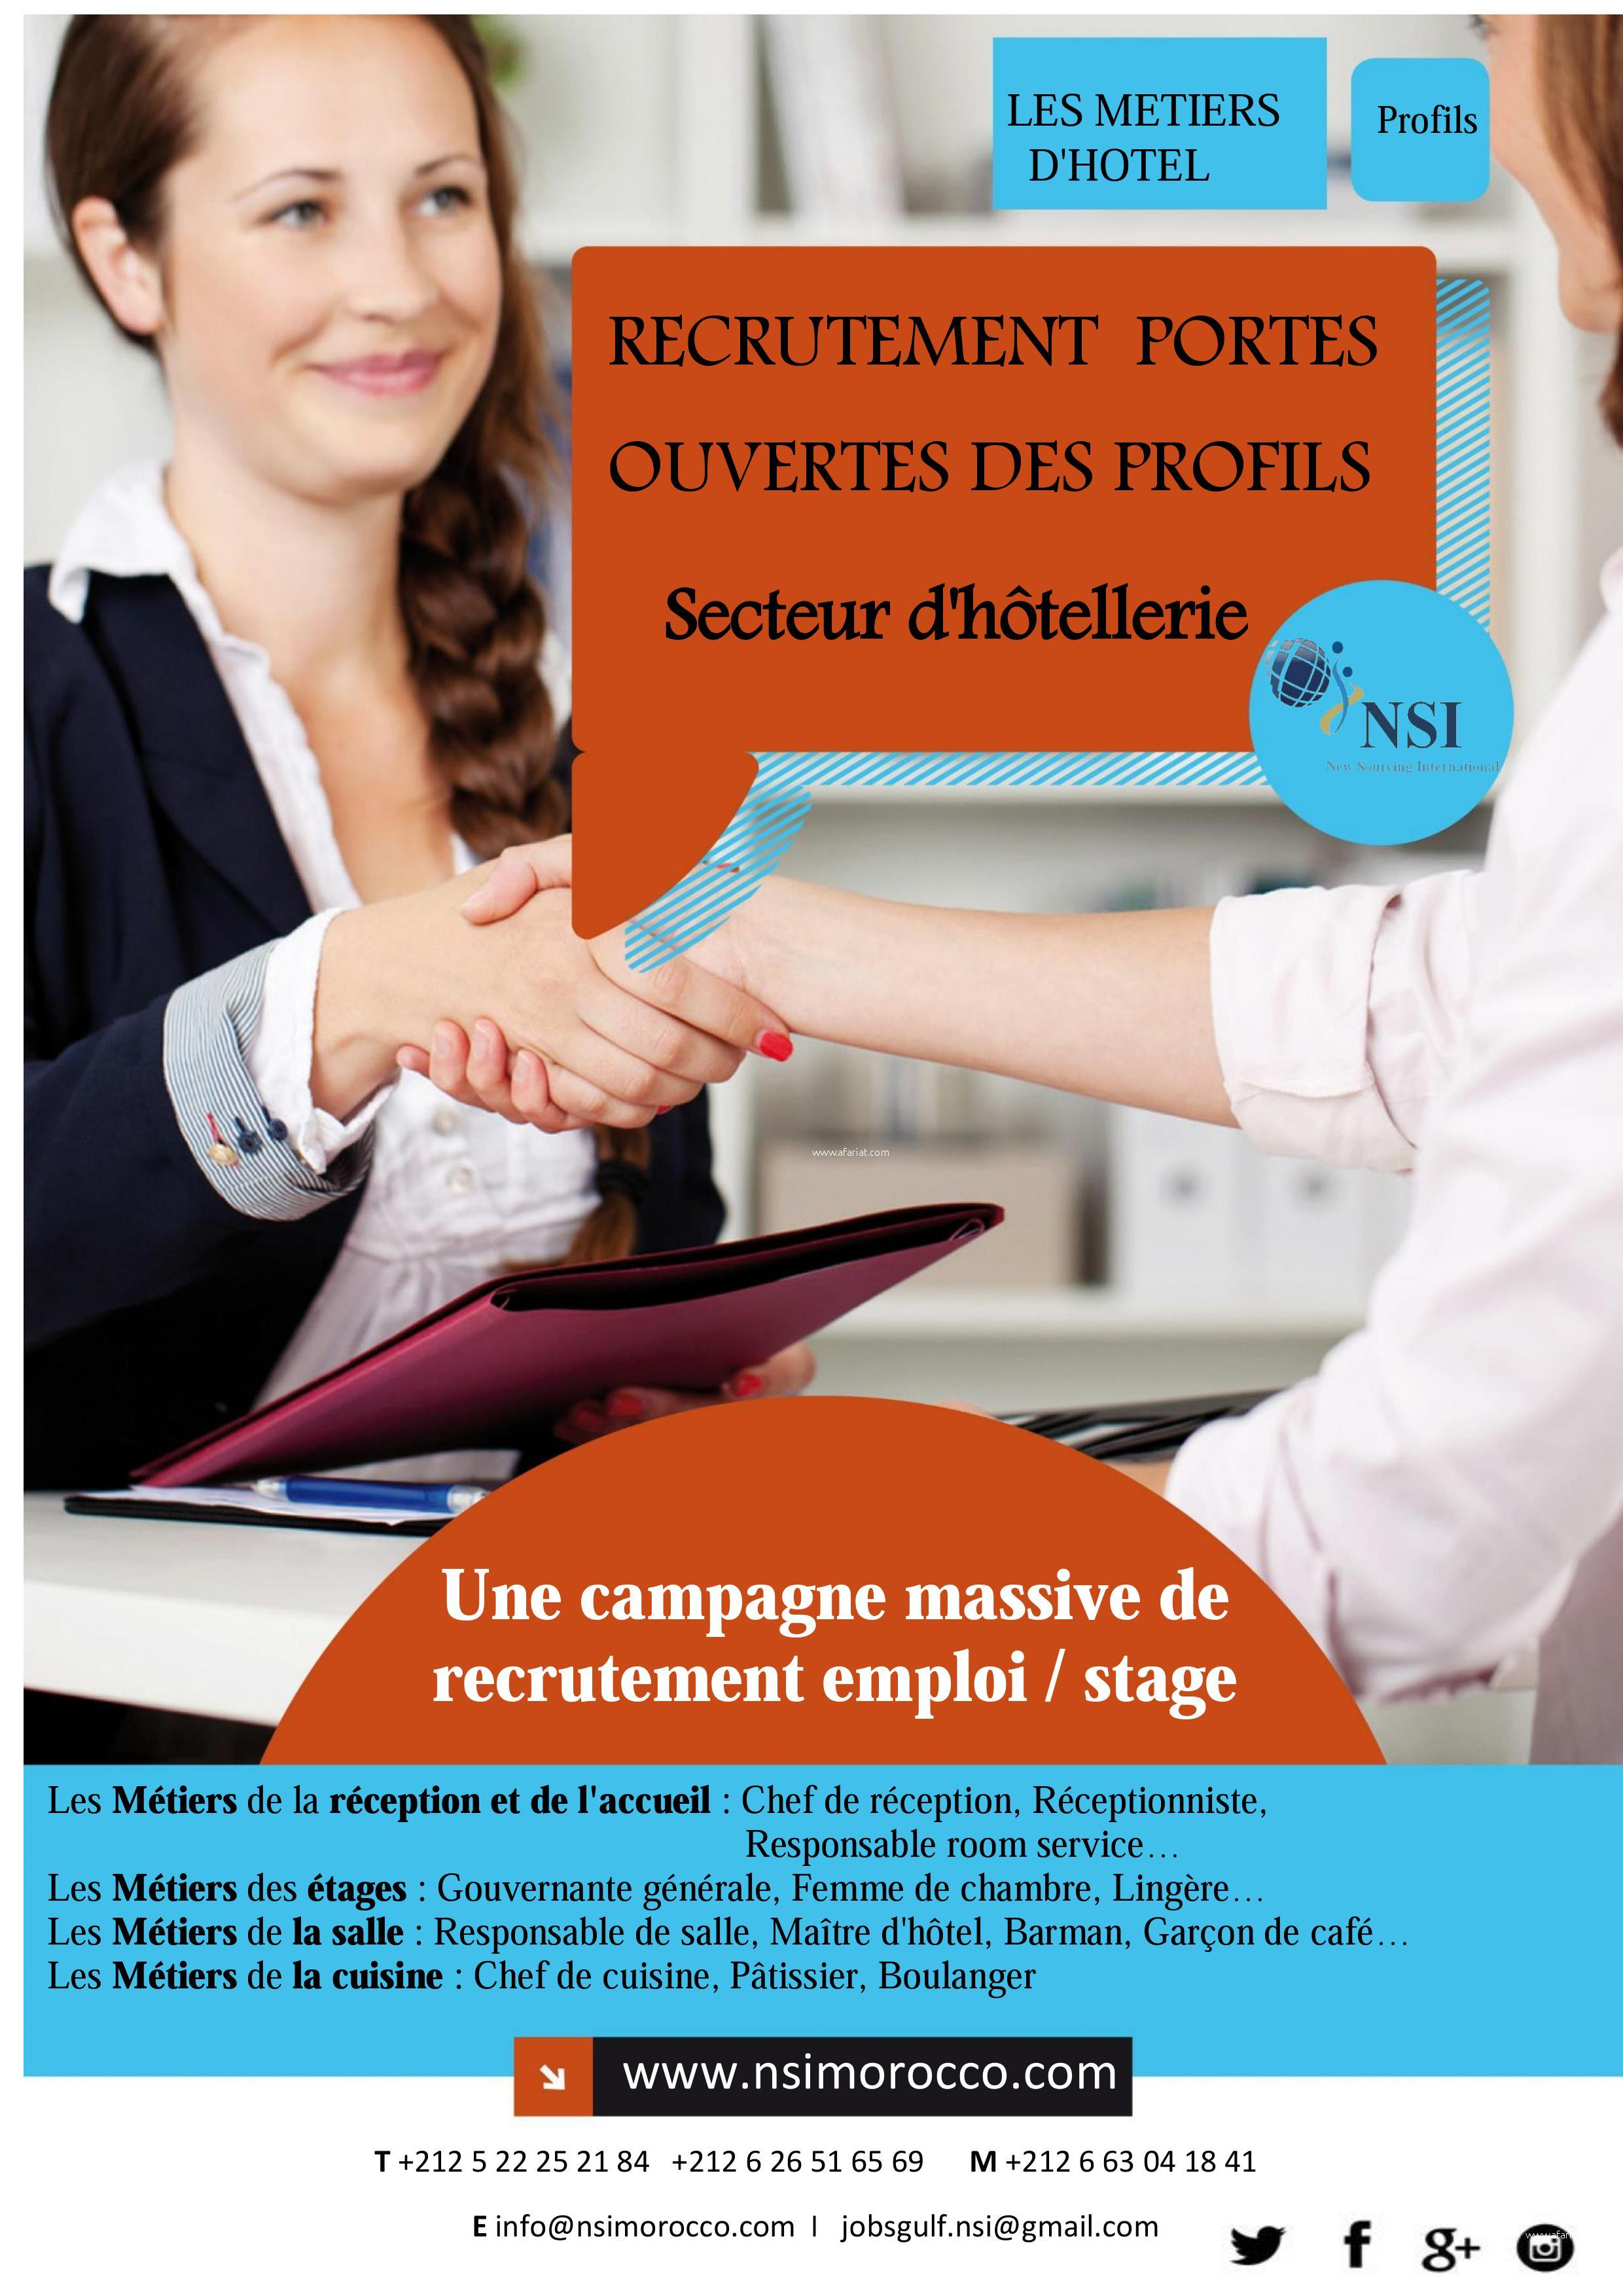 Recrutement Massive